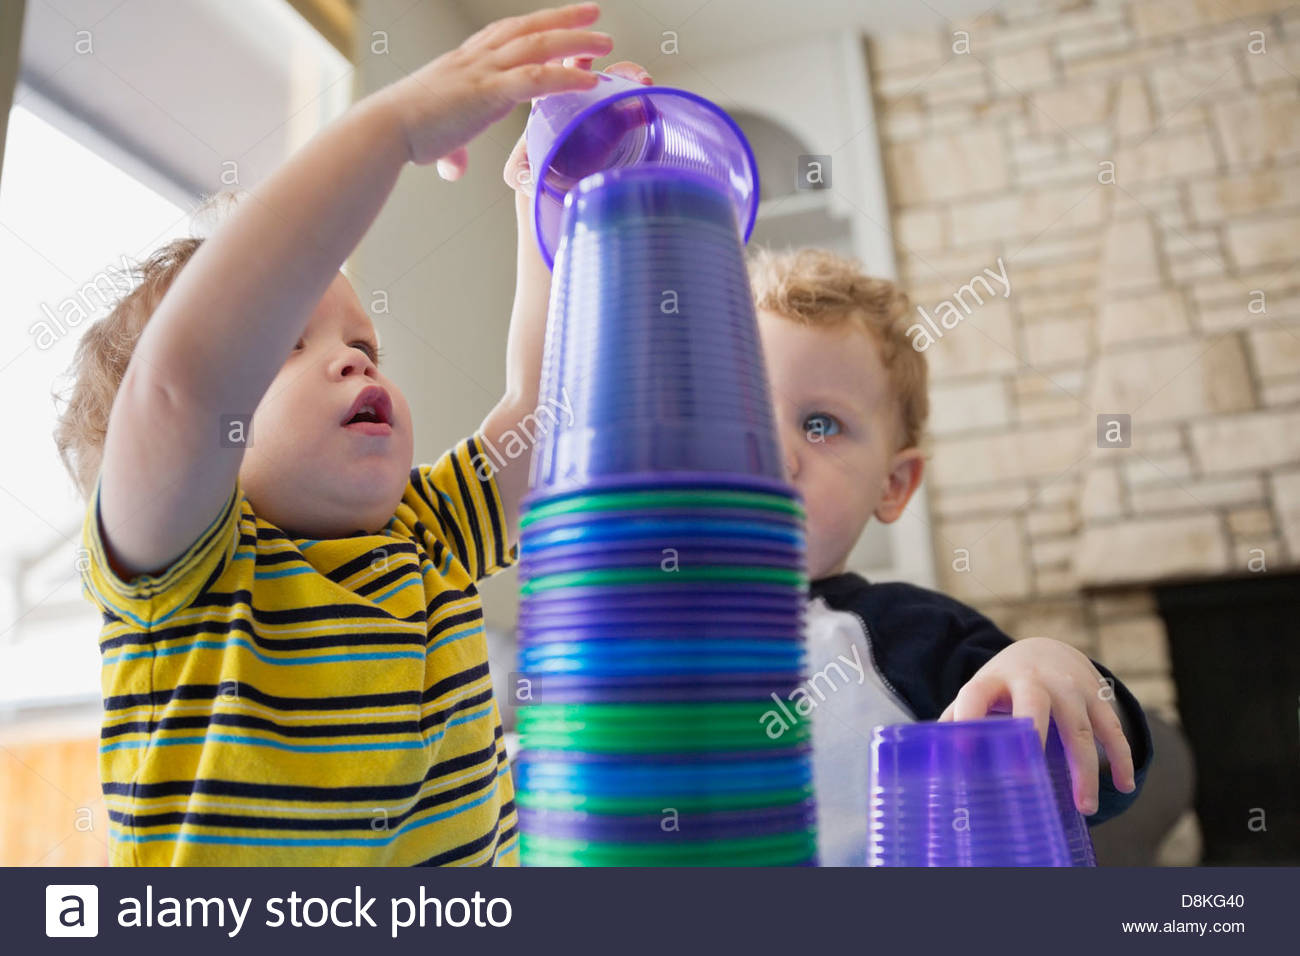 Little boys stacking plastic cups at home - Stock Image